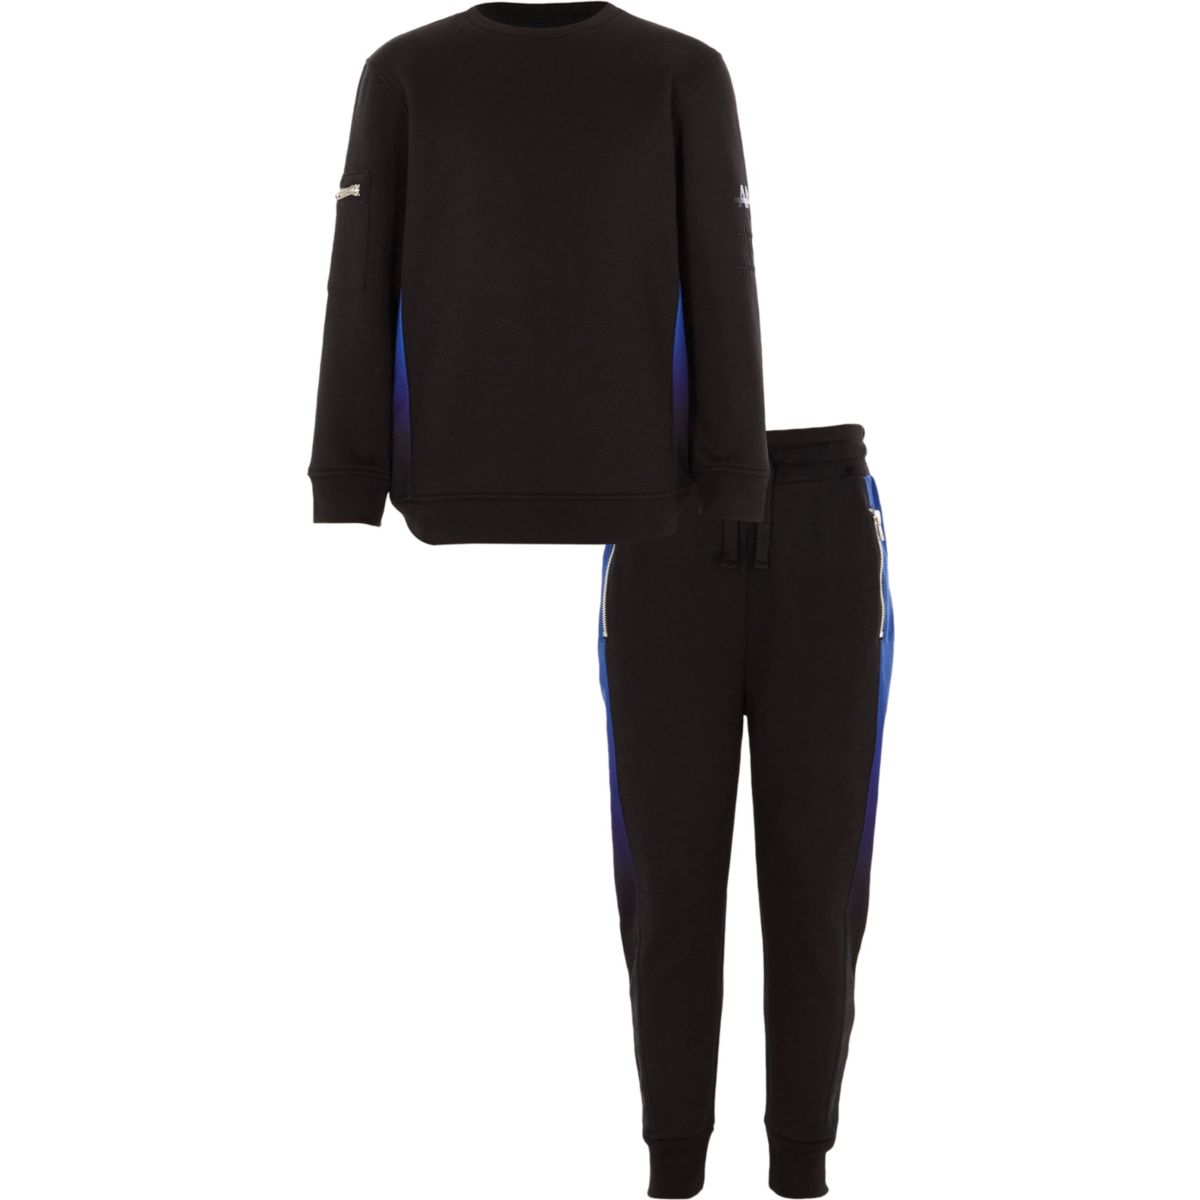 Boys black ombre panels sweatshirt outfit